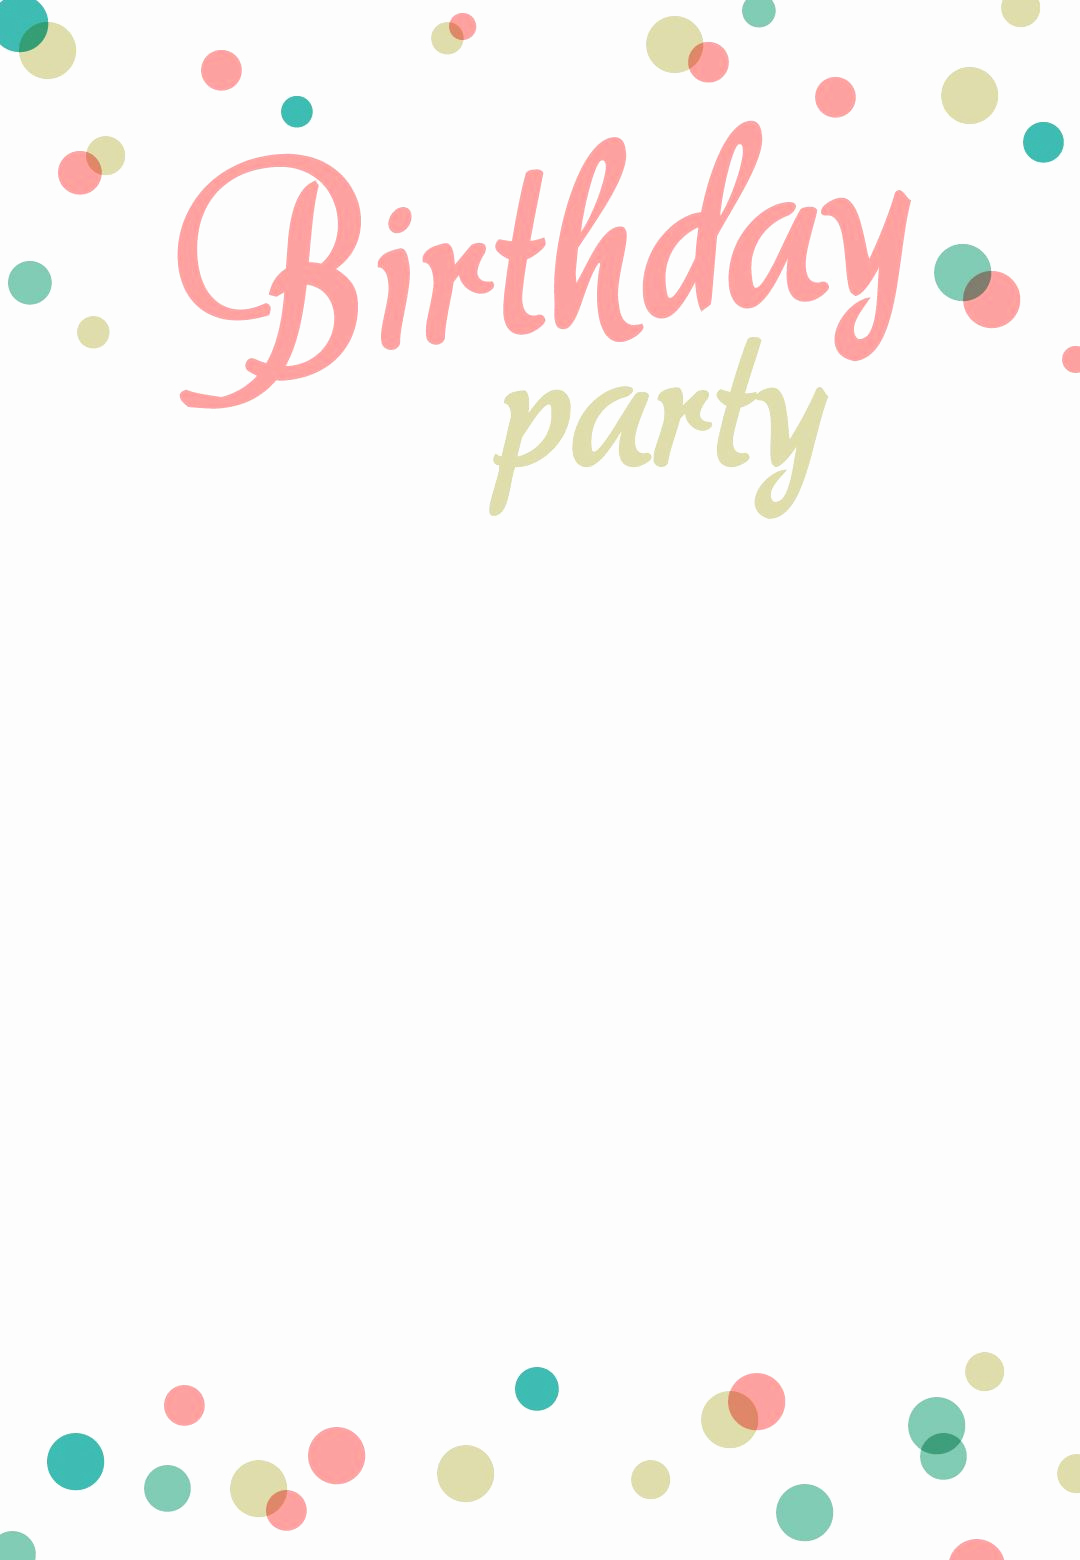 Birthday Invitation Message for Adults Unique Birthday Party Invitation Free Printable